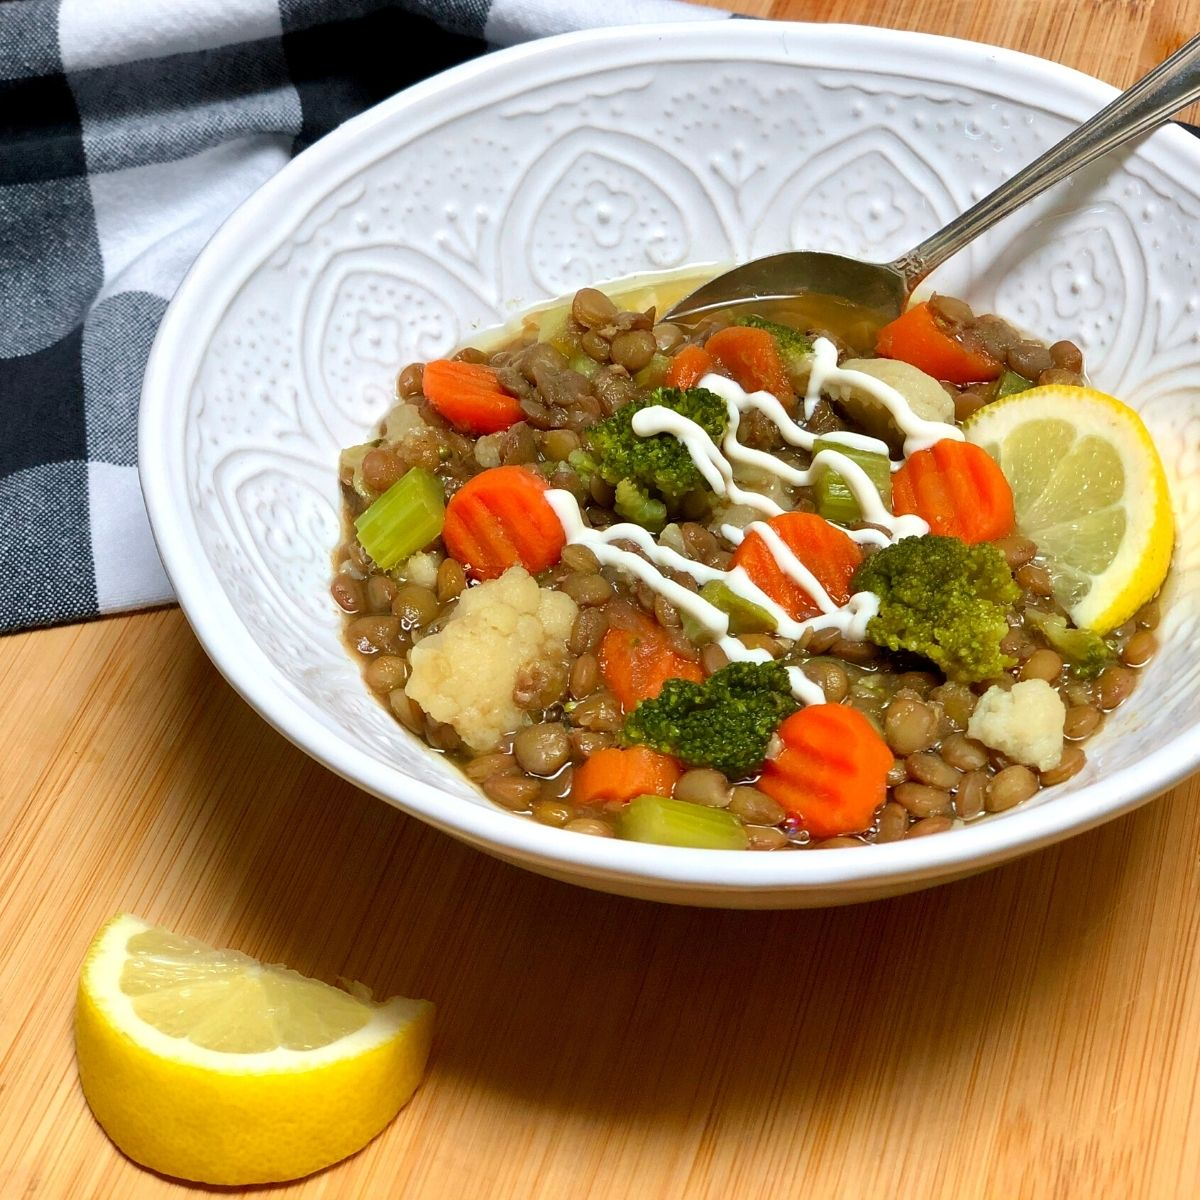 A bowl of easy vegan lentil veggie soup with green lentils, carrots, broccoli, cauliflower and celery, garnished with a drizzle of plain vegan yogurt and lemon wedges.